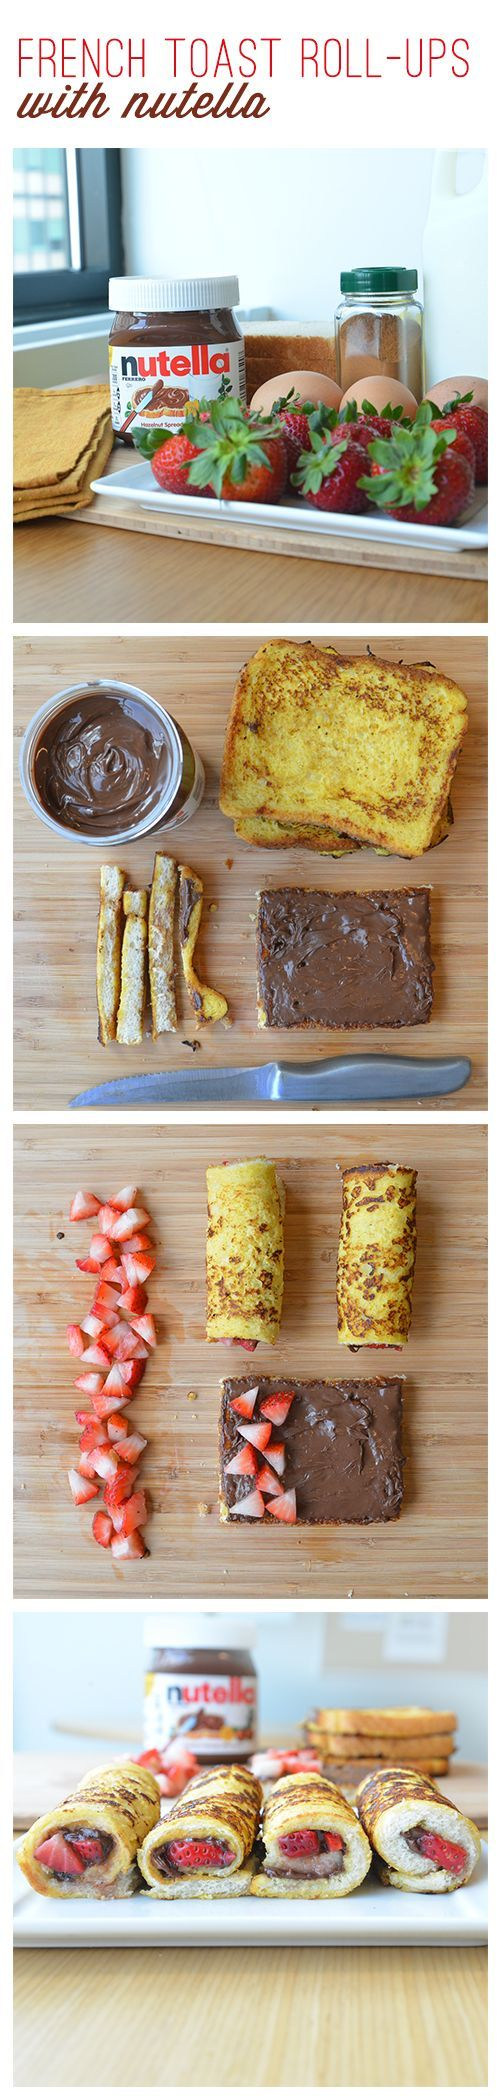 Keep your mornings rolling with this fork-free French toast Nutella® and strawberries breakfast idea. First prepare your own French toast recipe. Then remove the crusts. Spread Nutella® on each slice. Sprinkle with cleaned and cut strawberries. Roll them up and hand them out. Your kids will love the all-in-one-bites as much as you'll love the all-in-one-convenience.